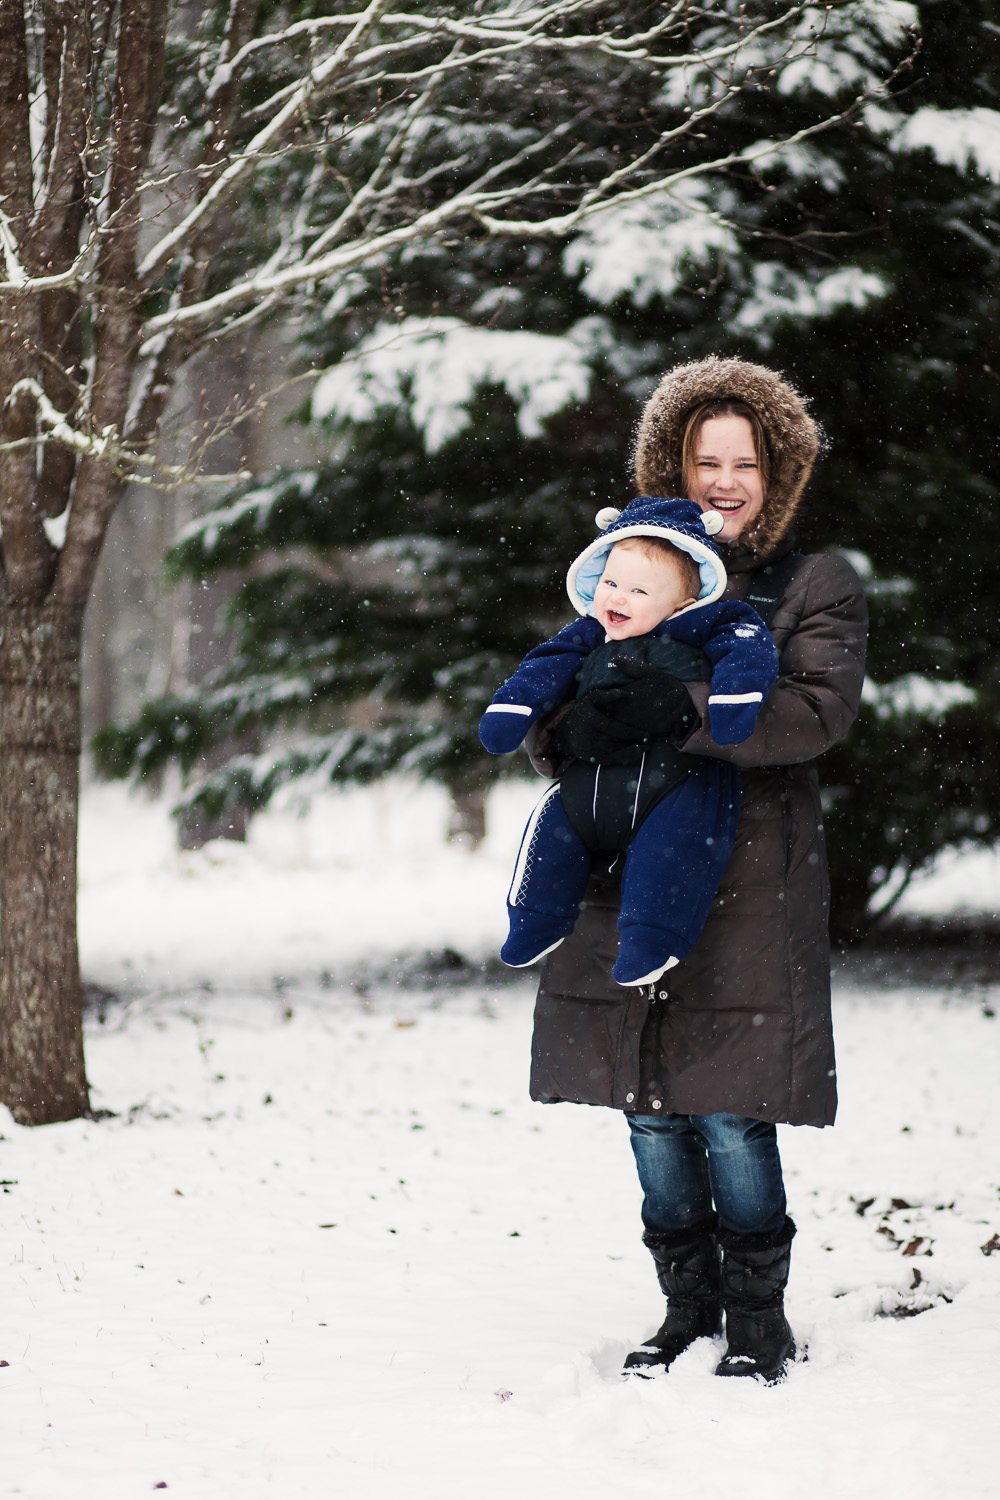 Atlanta family photographer snow portrait mom and baby